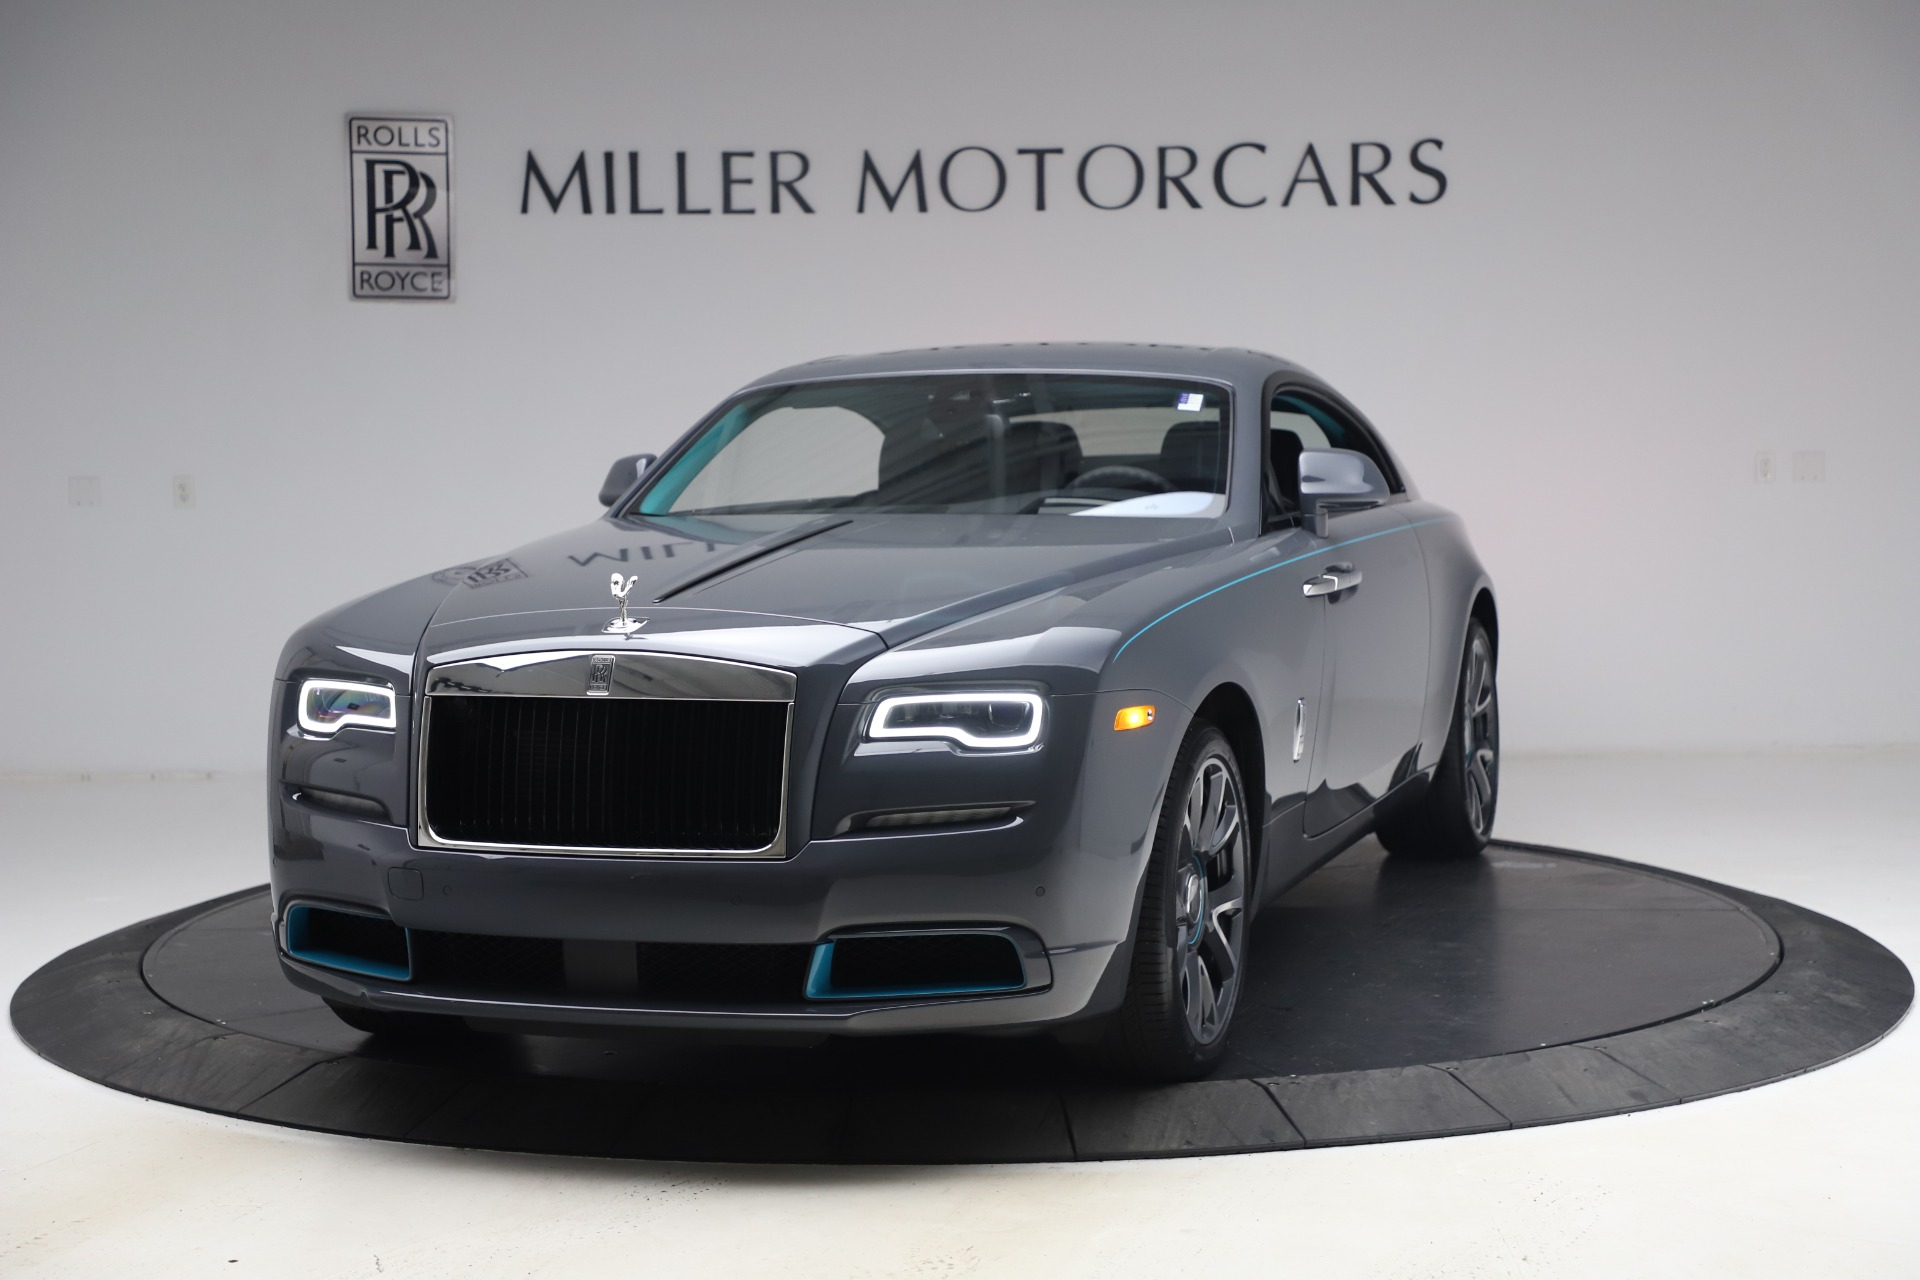 New 2021 Rolls-Royce Wraith KRYPTOS for sale $450,550 at McLaren Greenwich in Greenwich CT 06830 1